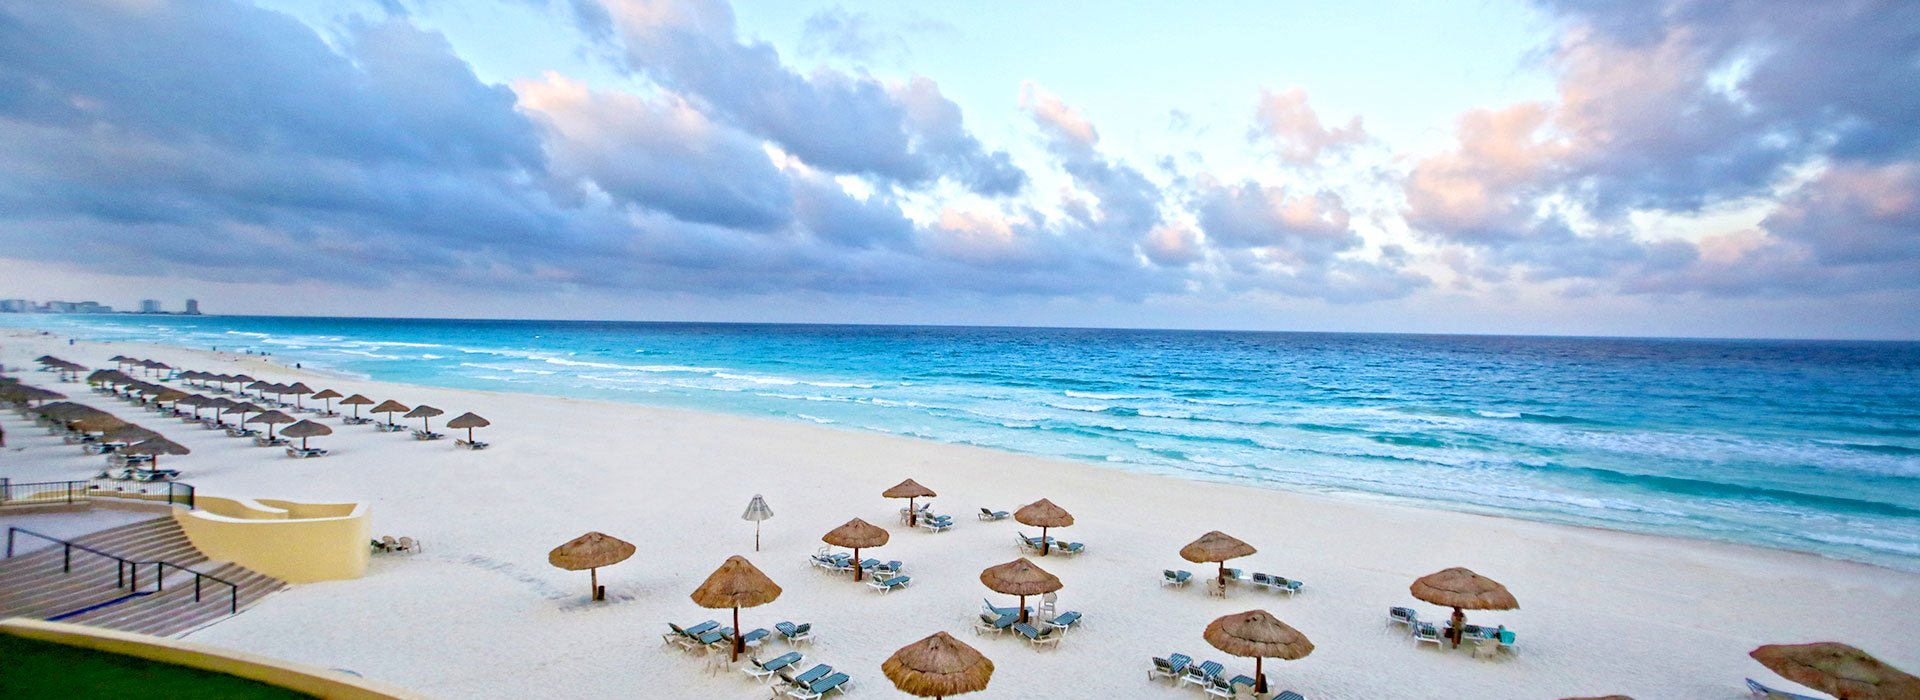 Top beachfront family resort in Cancun offering All Inclusive Plans, top amenities